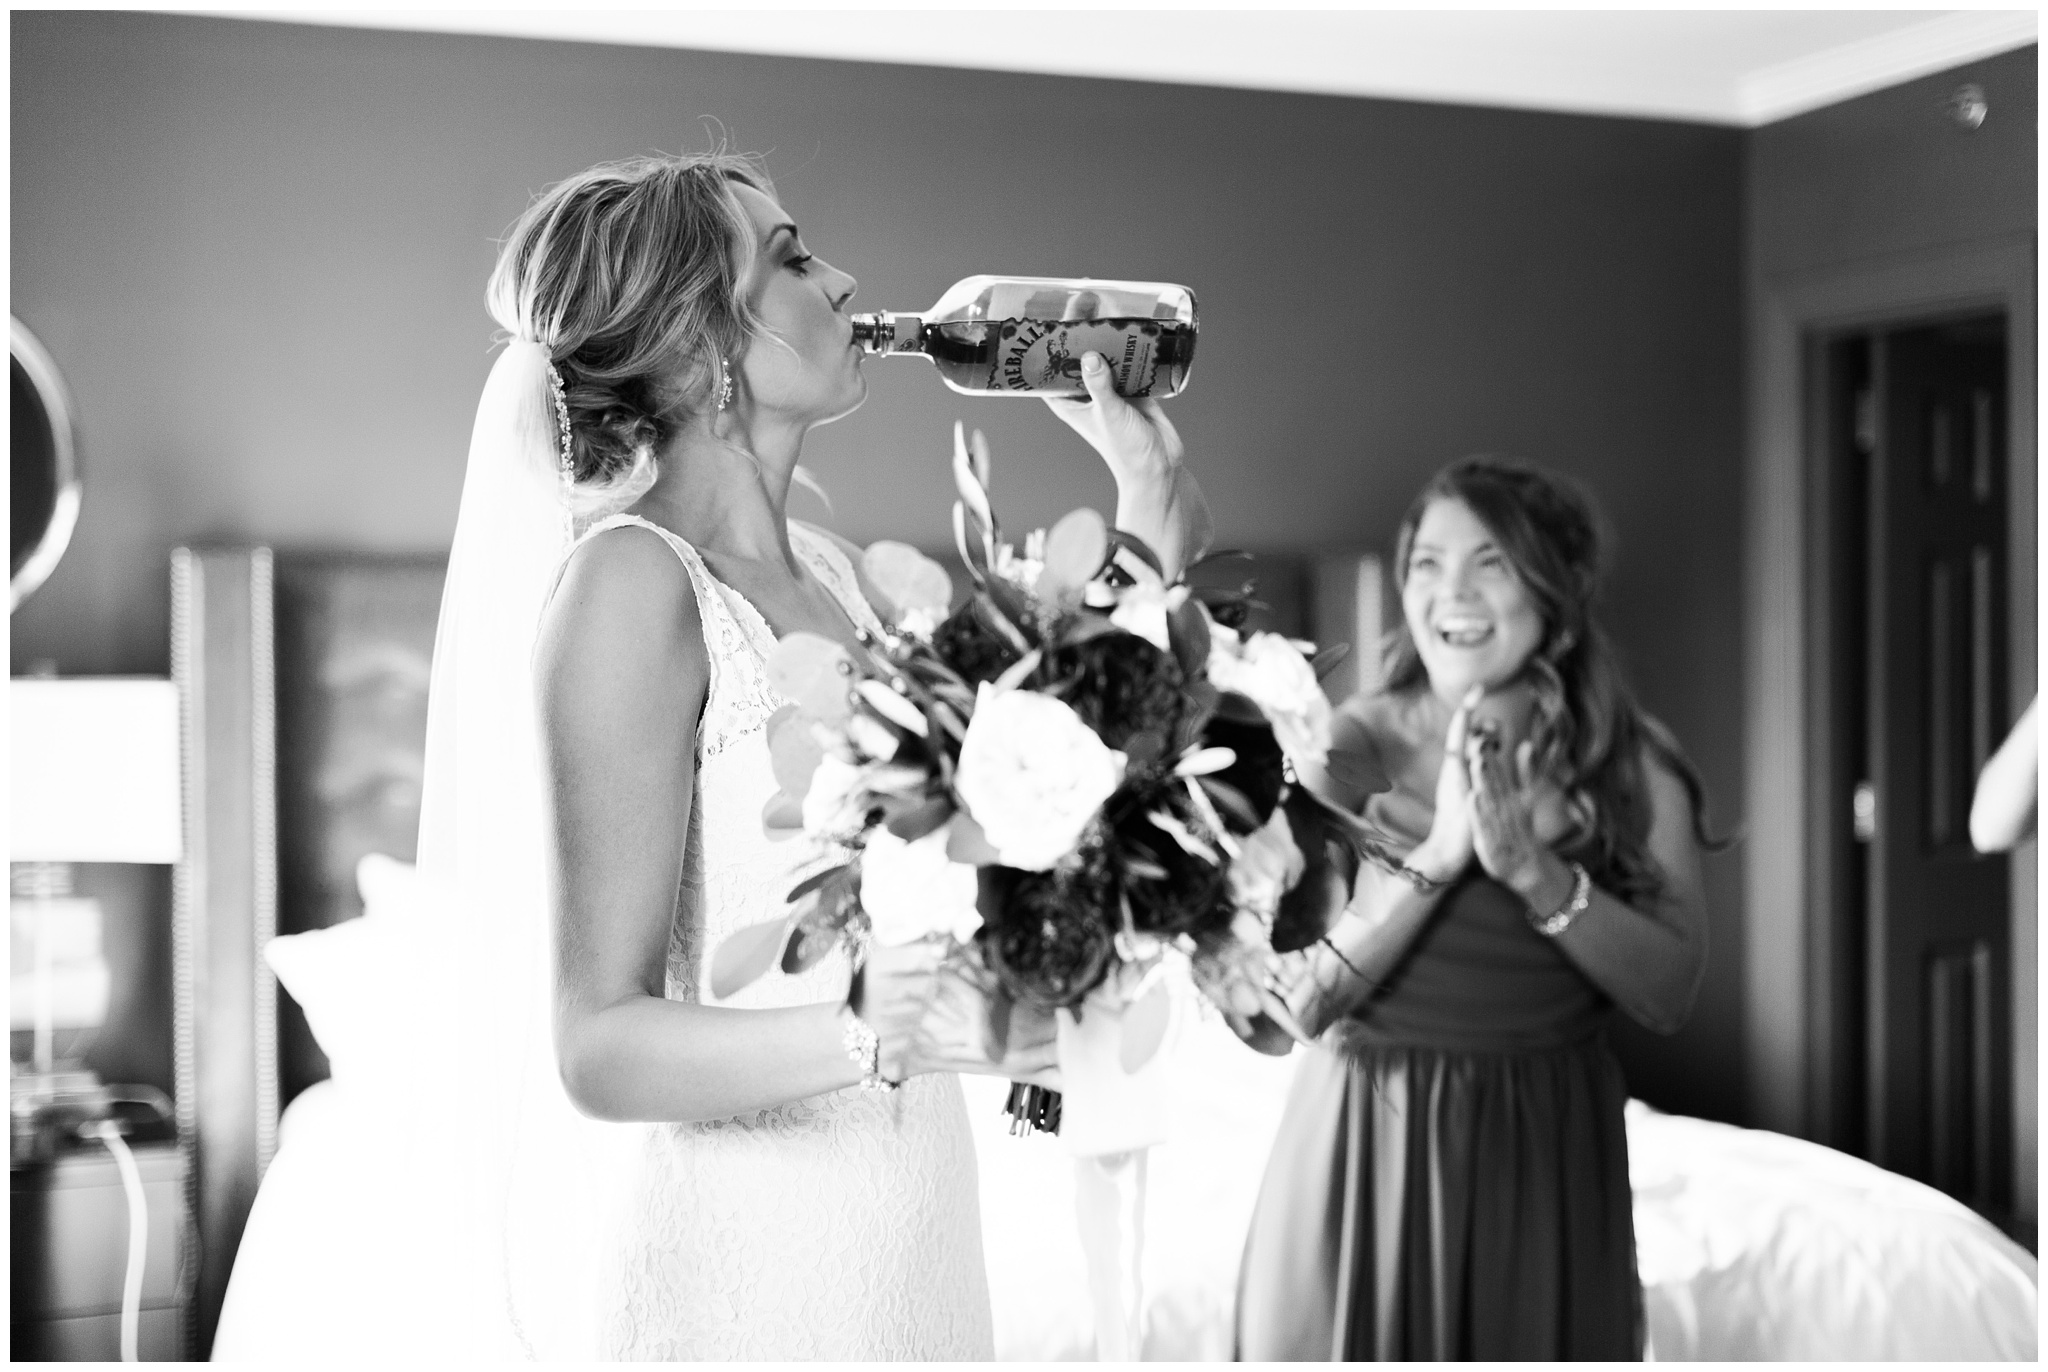 RebeccaHaleyPhotography_BarringtonPhotographer_ChicagoPhotographer_ChicagoWedding_0111.jpg